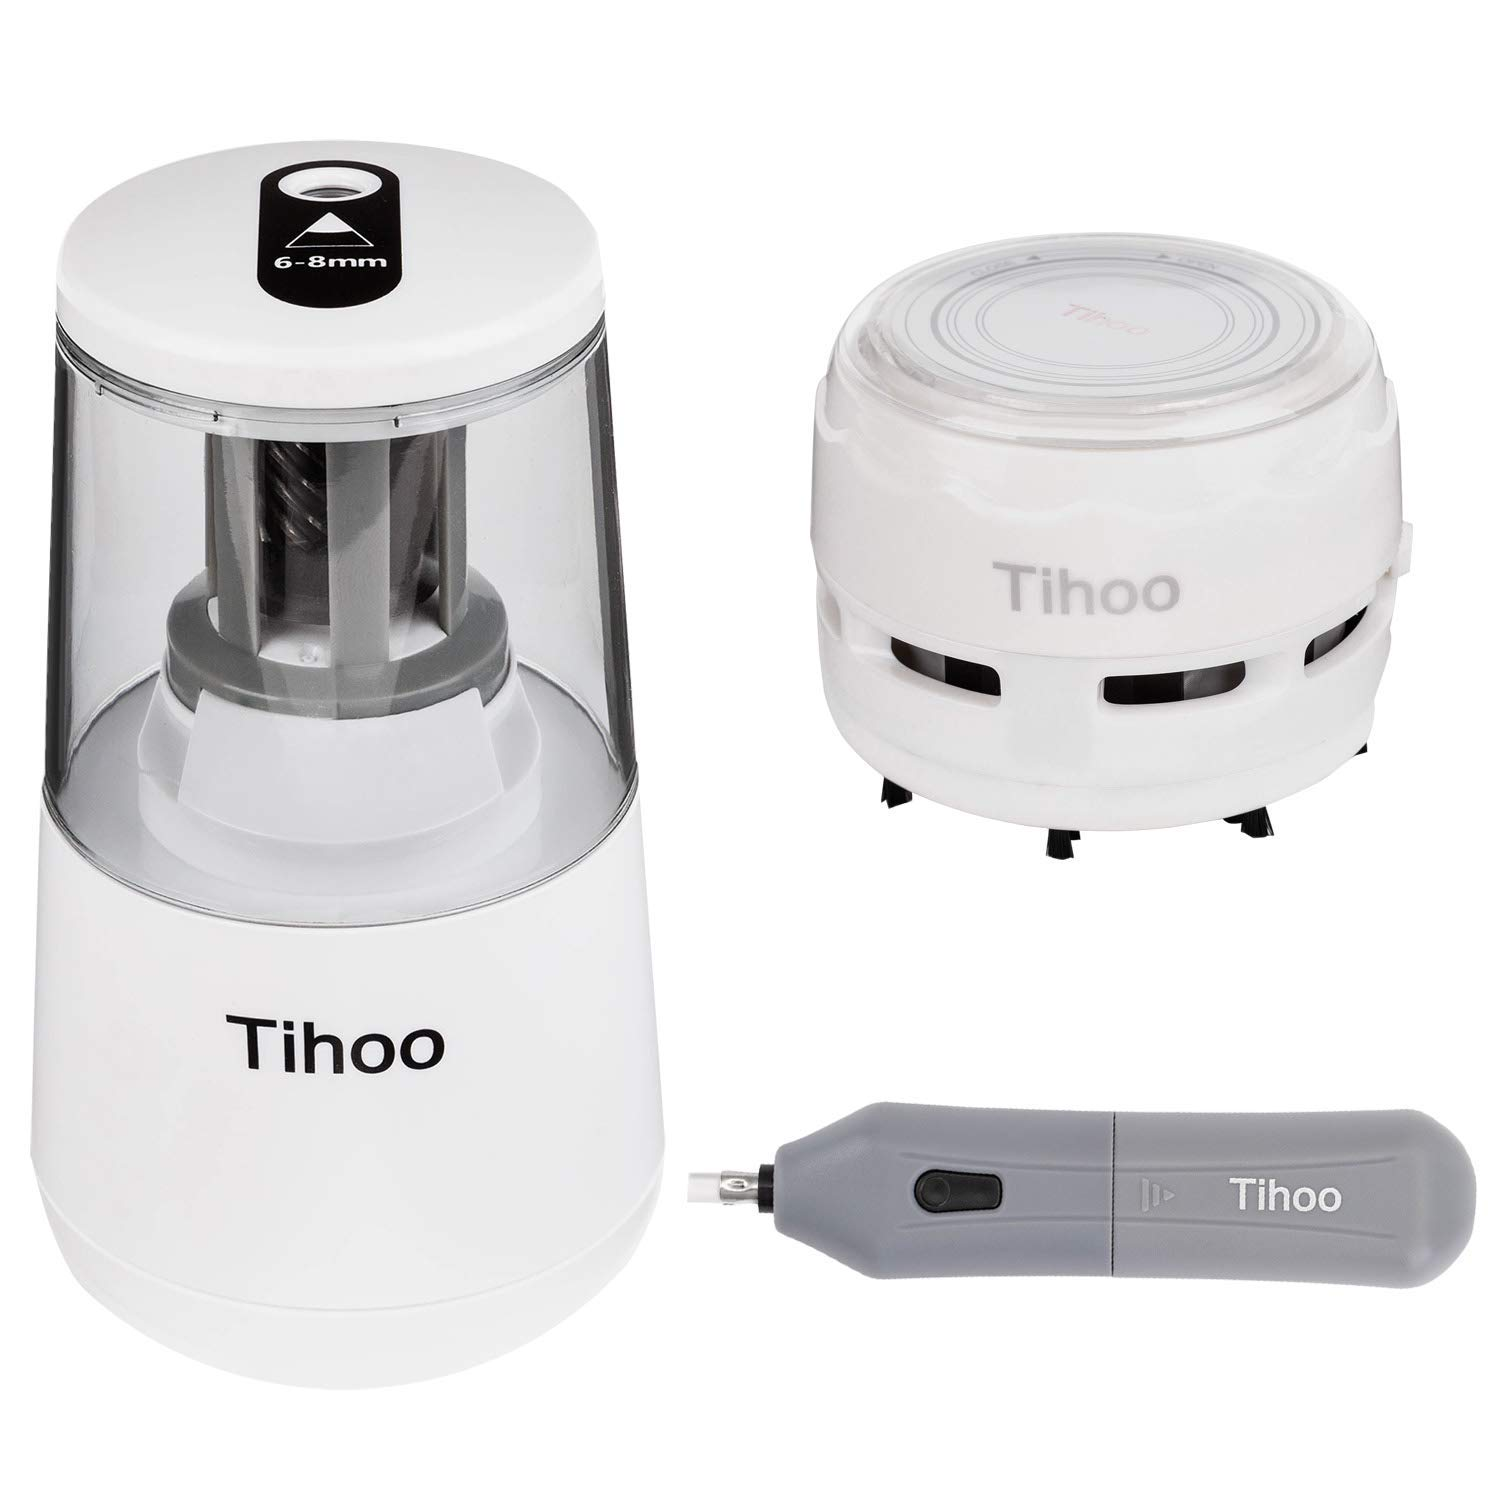 TOROTON Electric Pencil Sharpener Set, with Electric Eraserr and Mini Desk Vacuum. Auto Stop for 6-8mm Pencils, USB/AA Battery Operated in School Classroom/Office/Home(USB/AC Adapter Included)